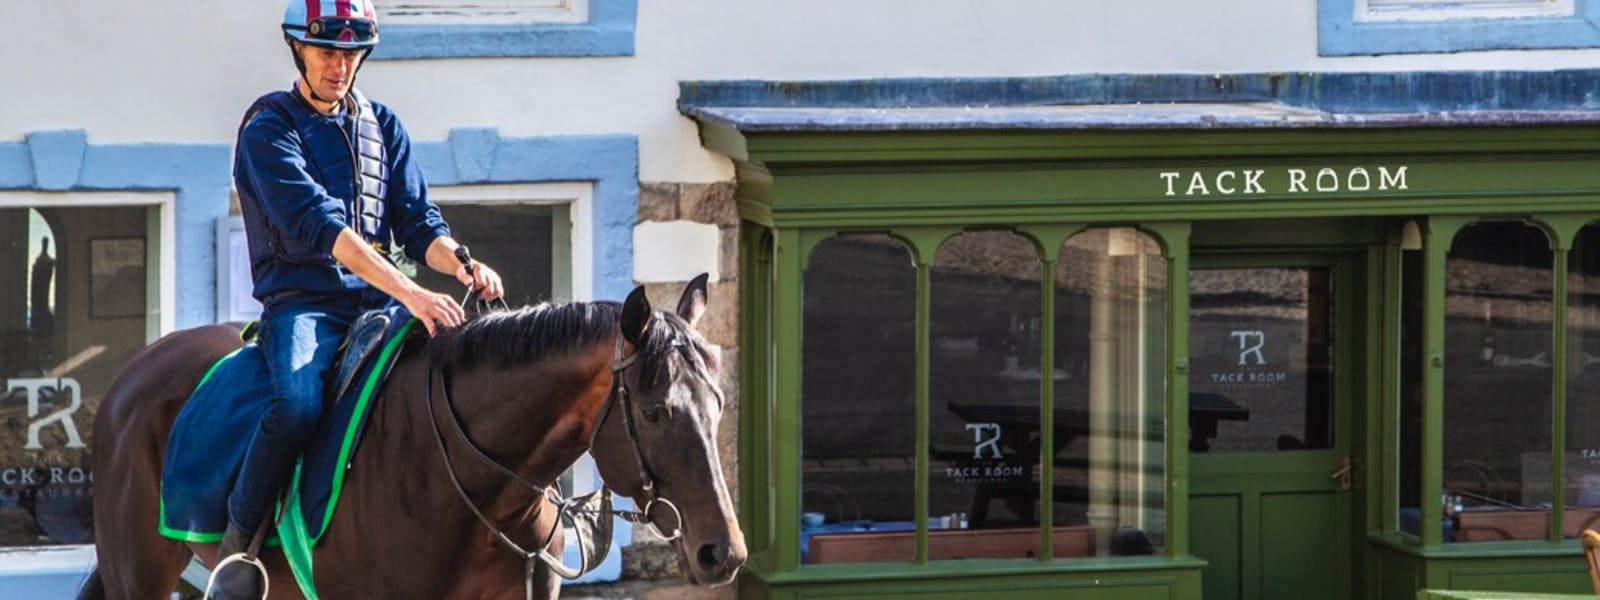 Middleham Racehorse walking past The Wensleydale Hotel, The Tack Room Restaurant & Bar, Wensleydale, Yorkshire Dales